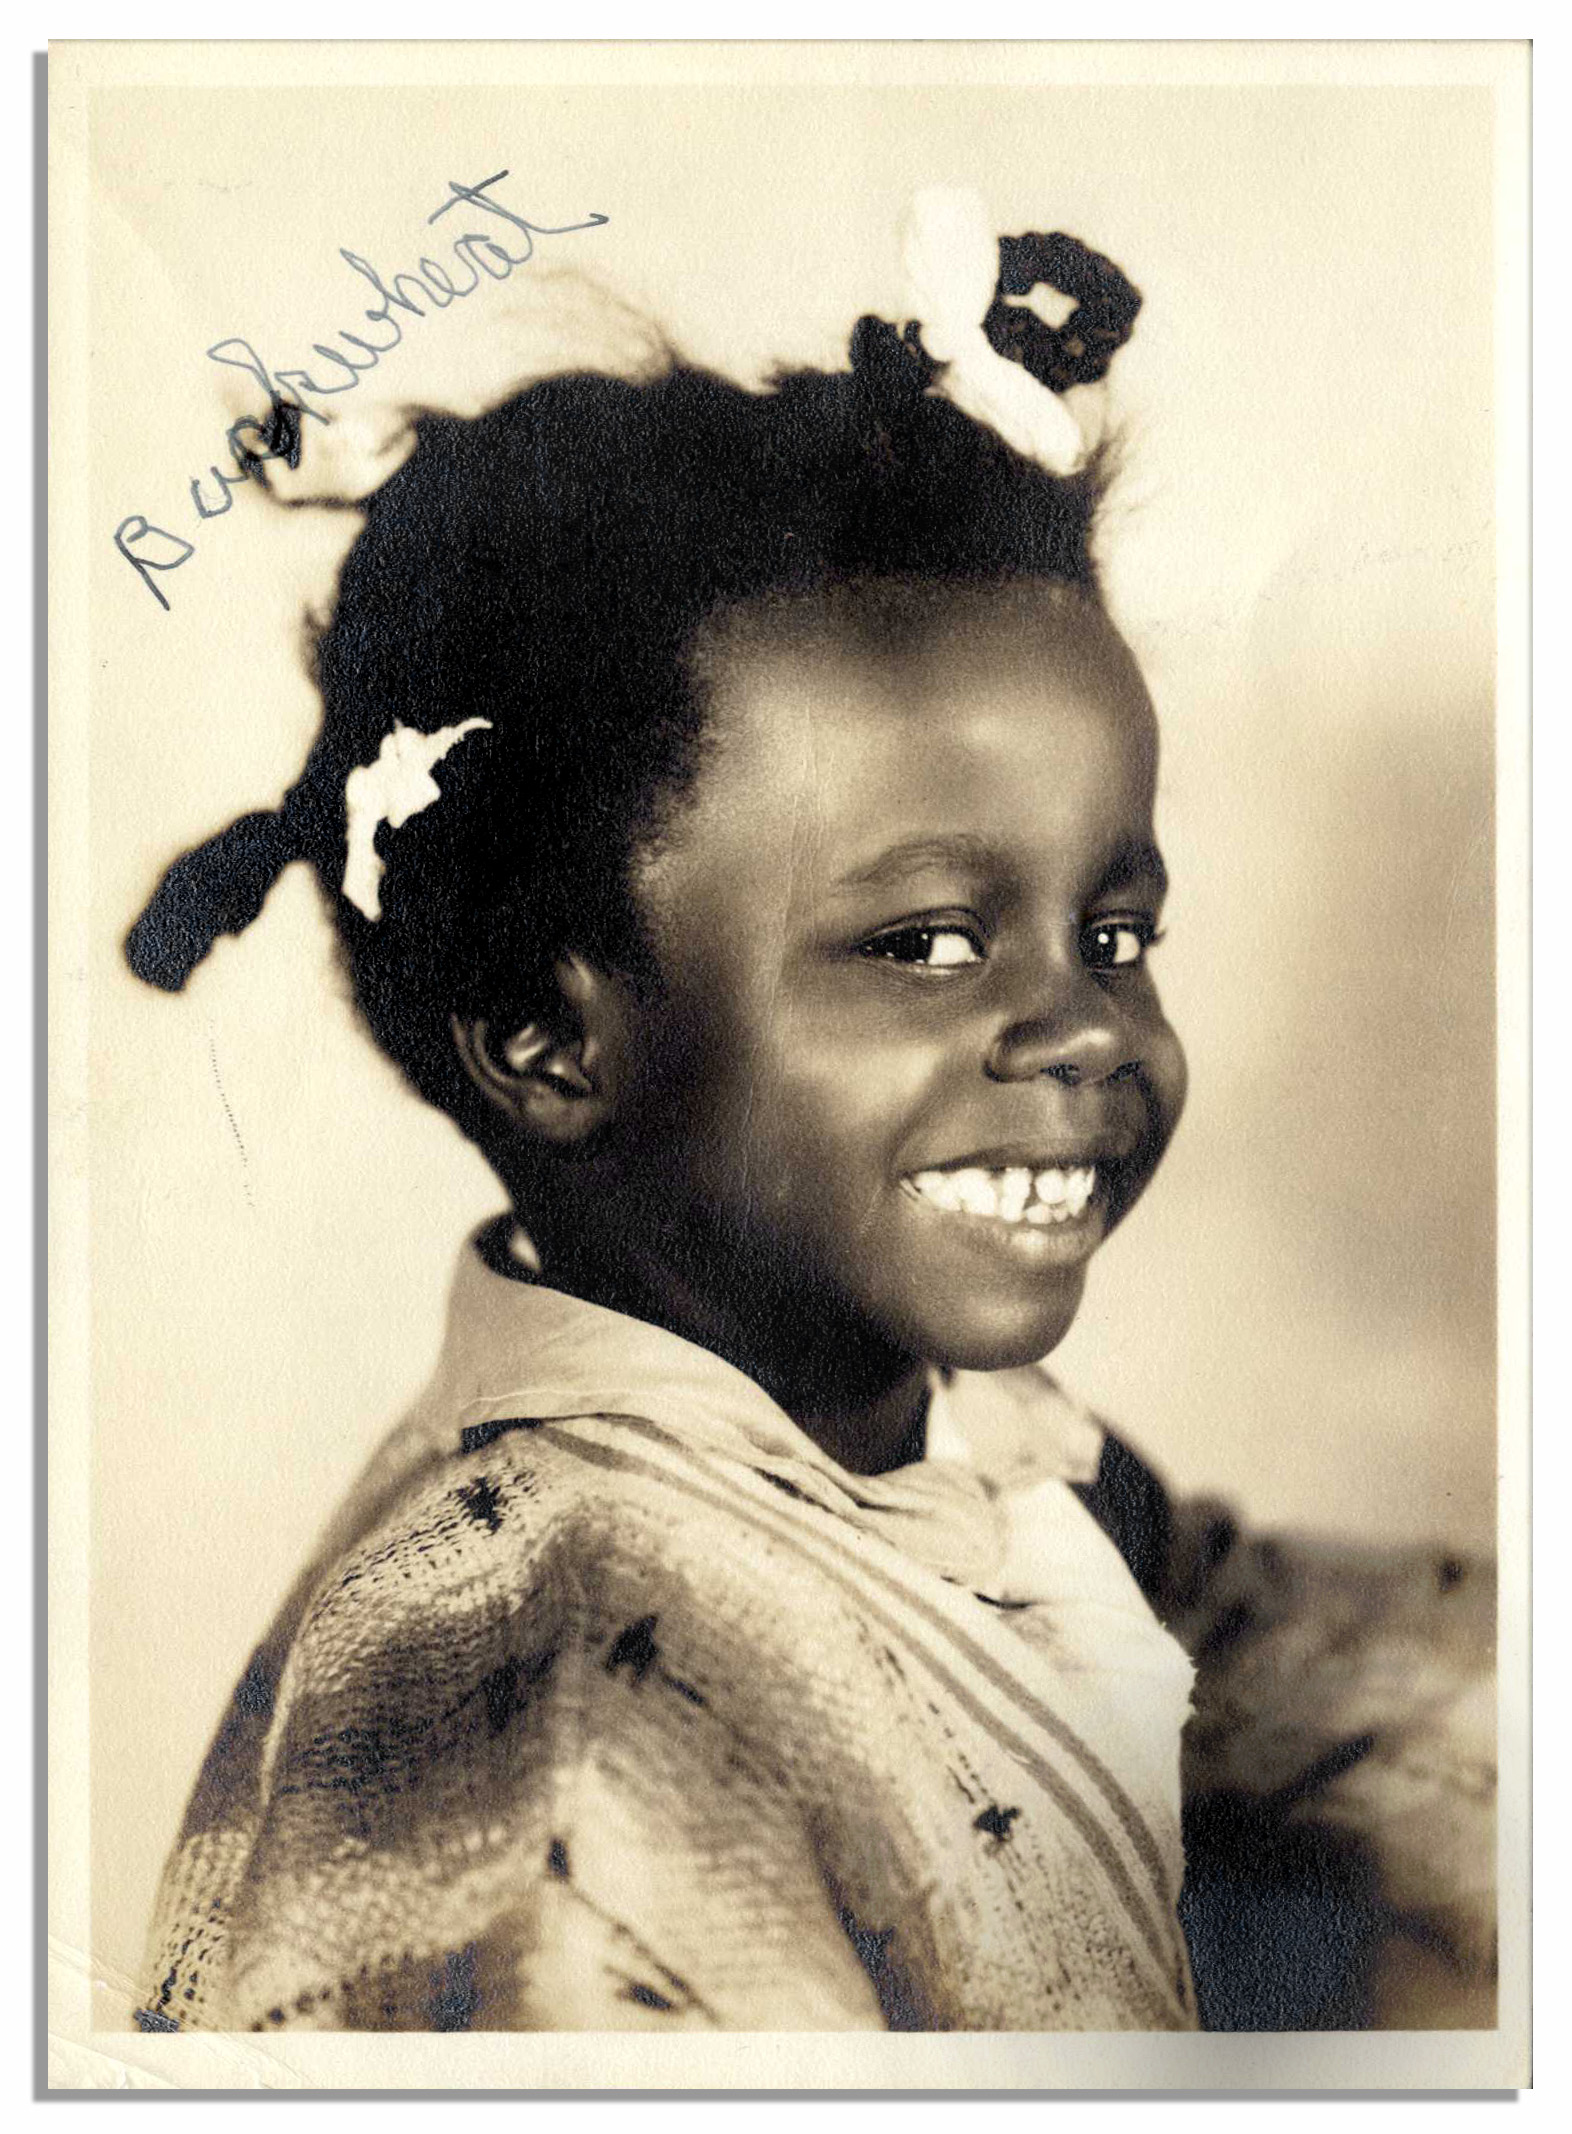 Our Gang Child Actor William Thomas Photo Signed as Buckwheat 1572x2134